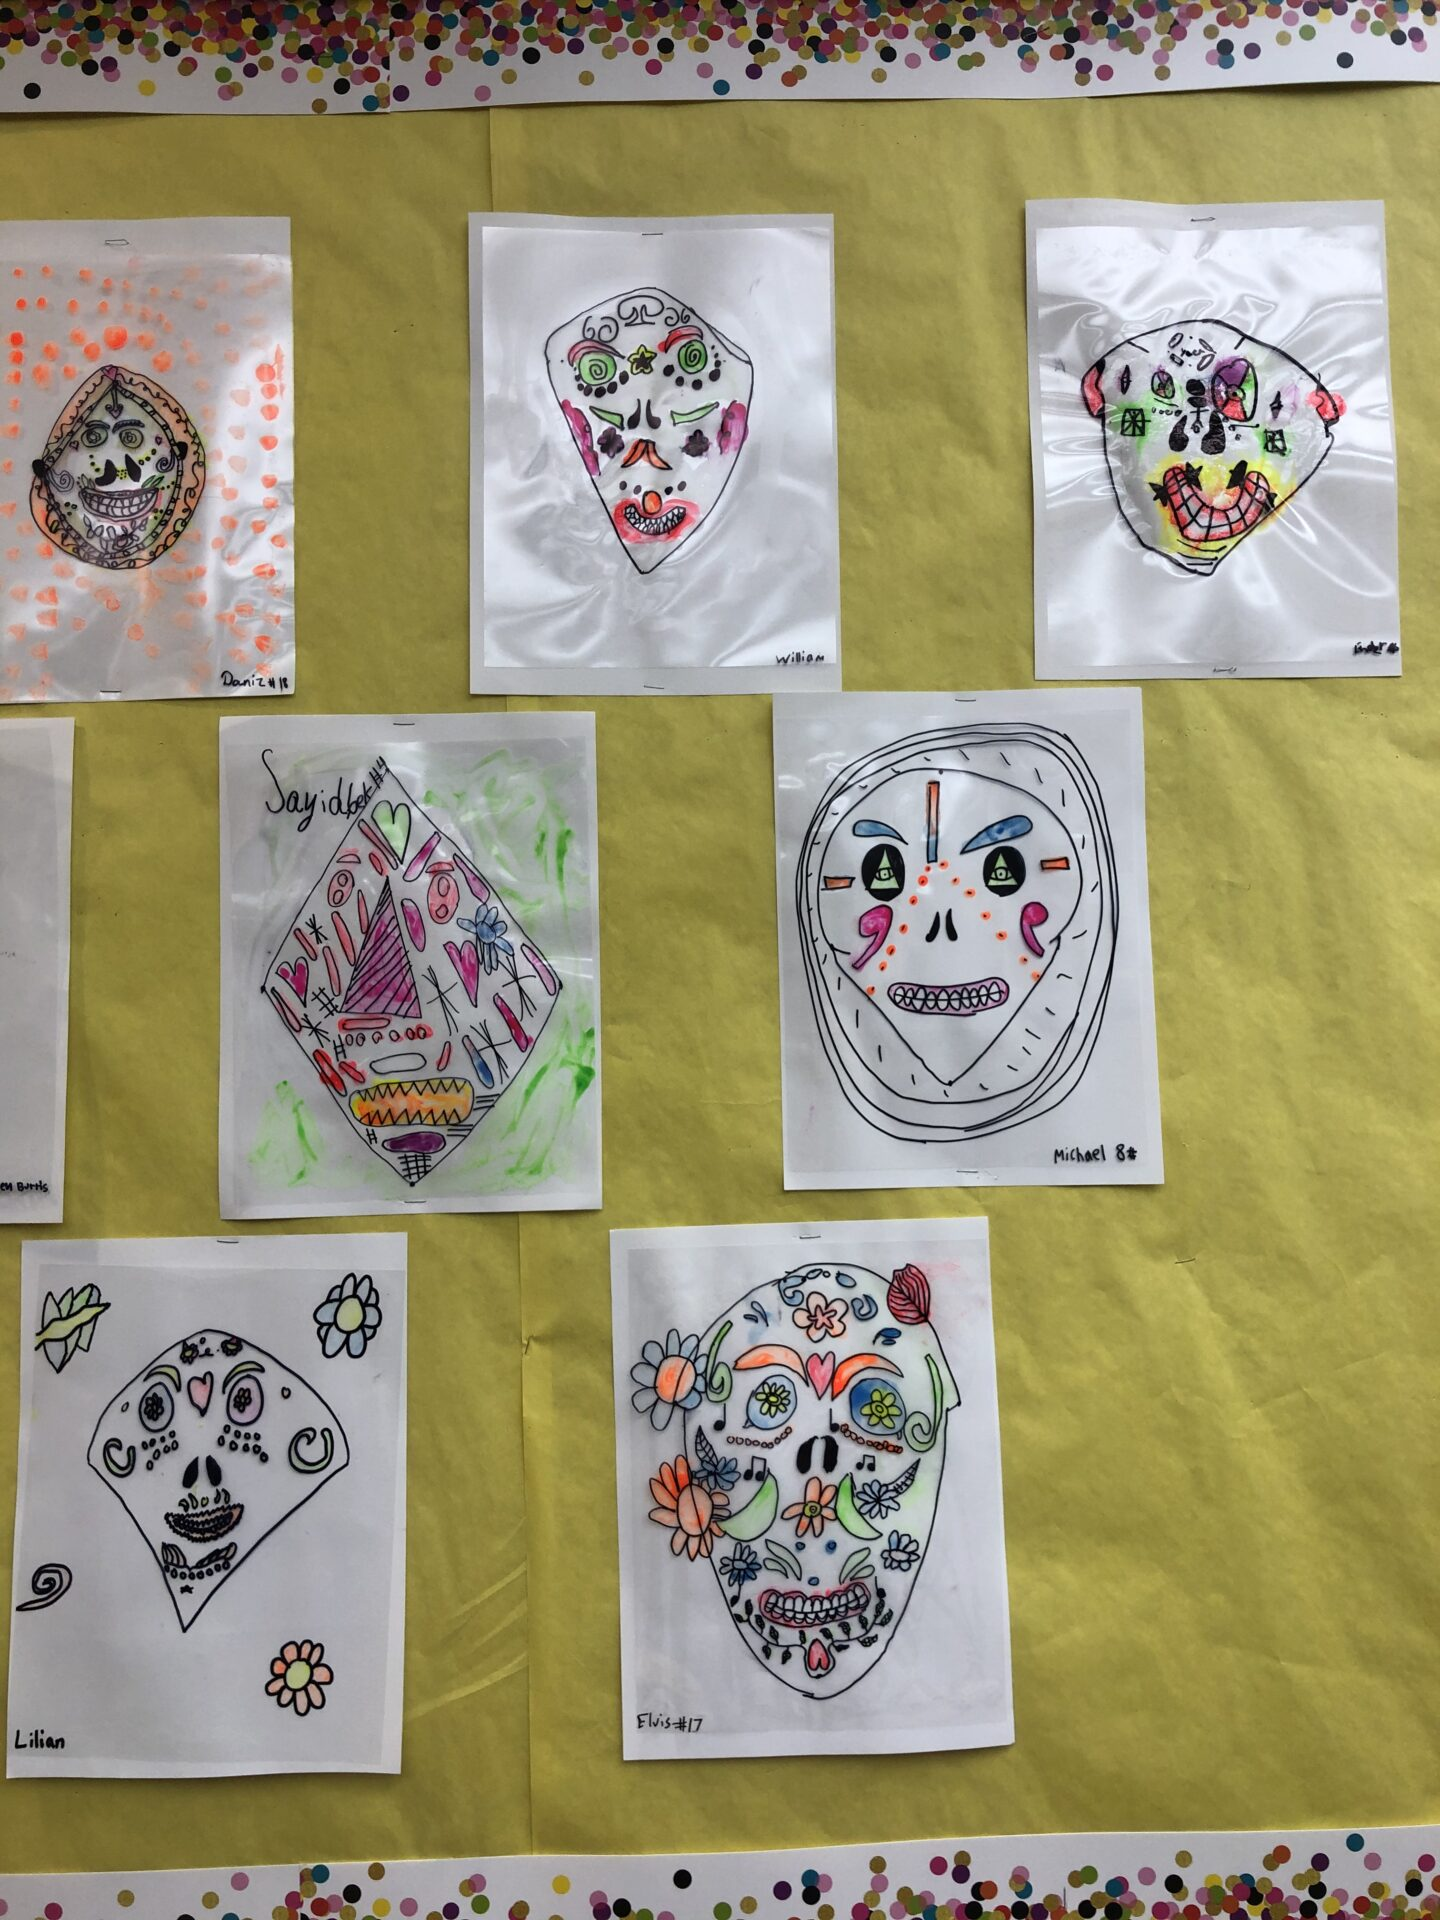 Frida Kahlo inspired Reserve Sugar Skulls created by students fro Grade 5.  Follow @How2playtoday for more exciting activites